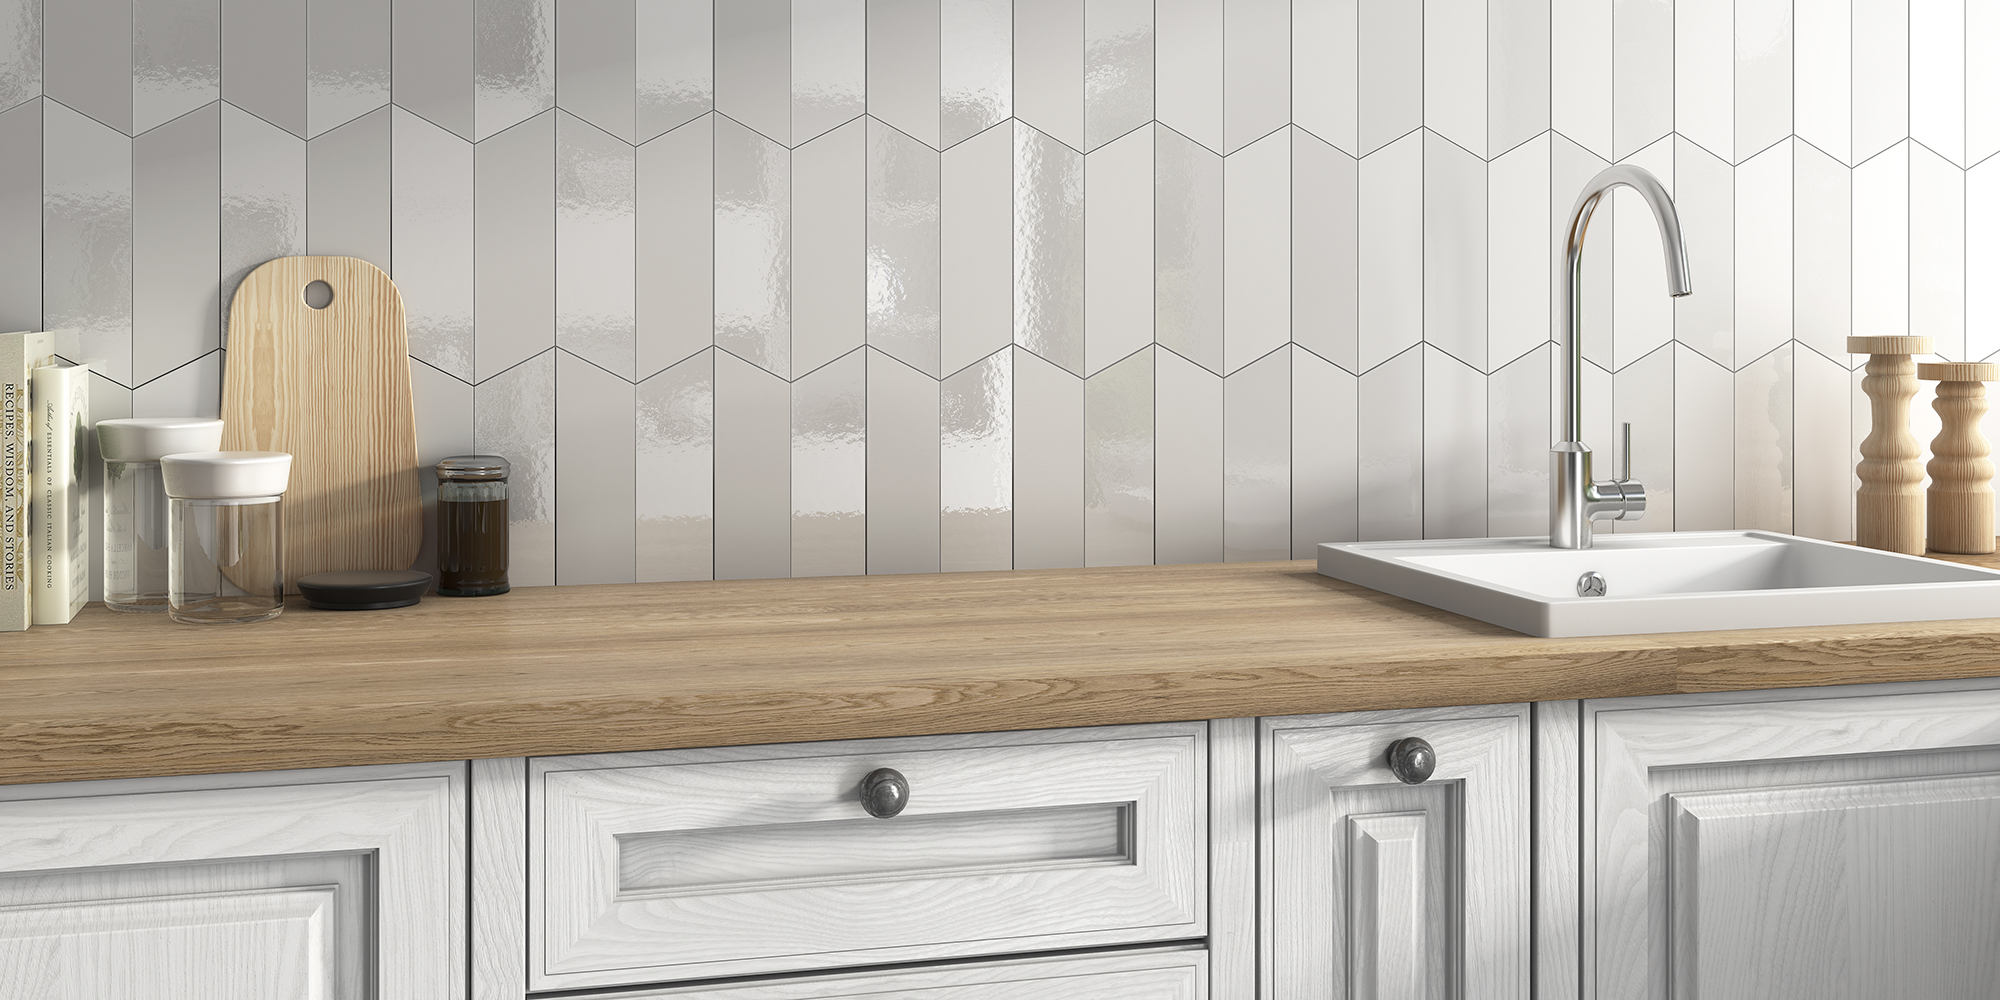 Lloyd 5x20. Chevron creative wall tiles.